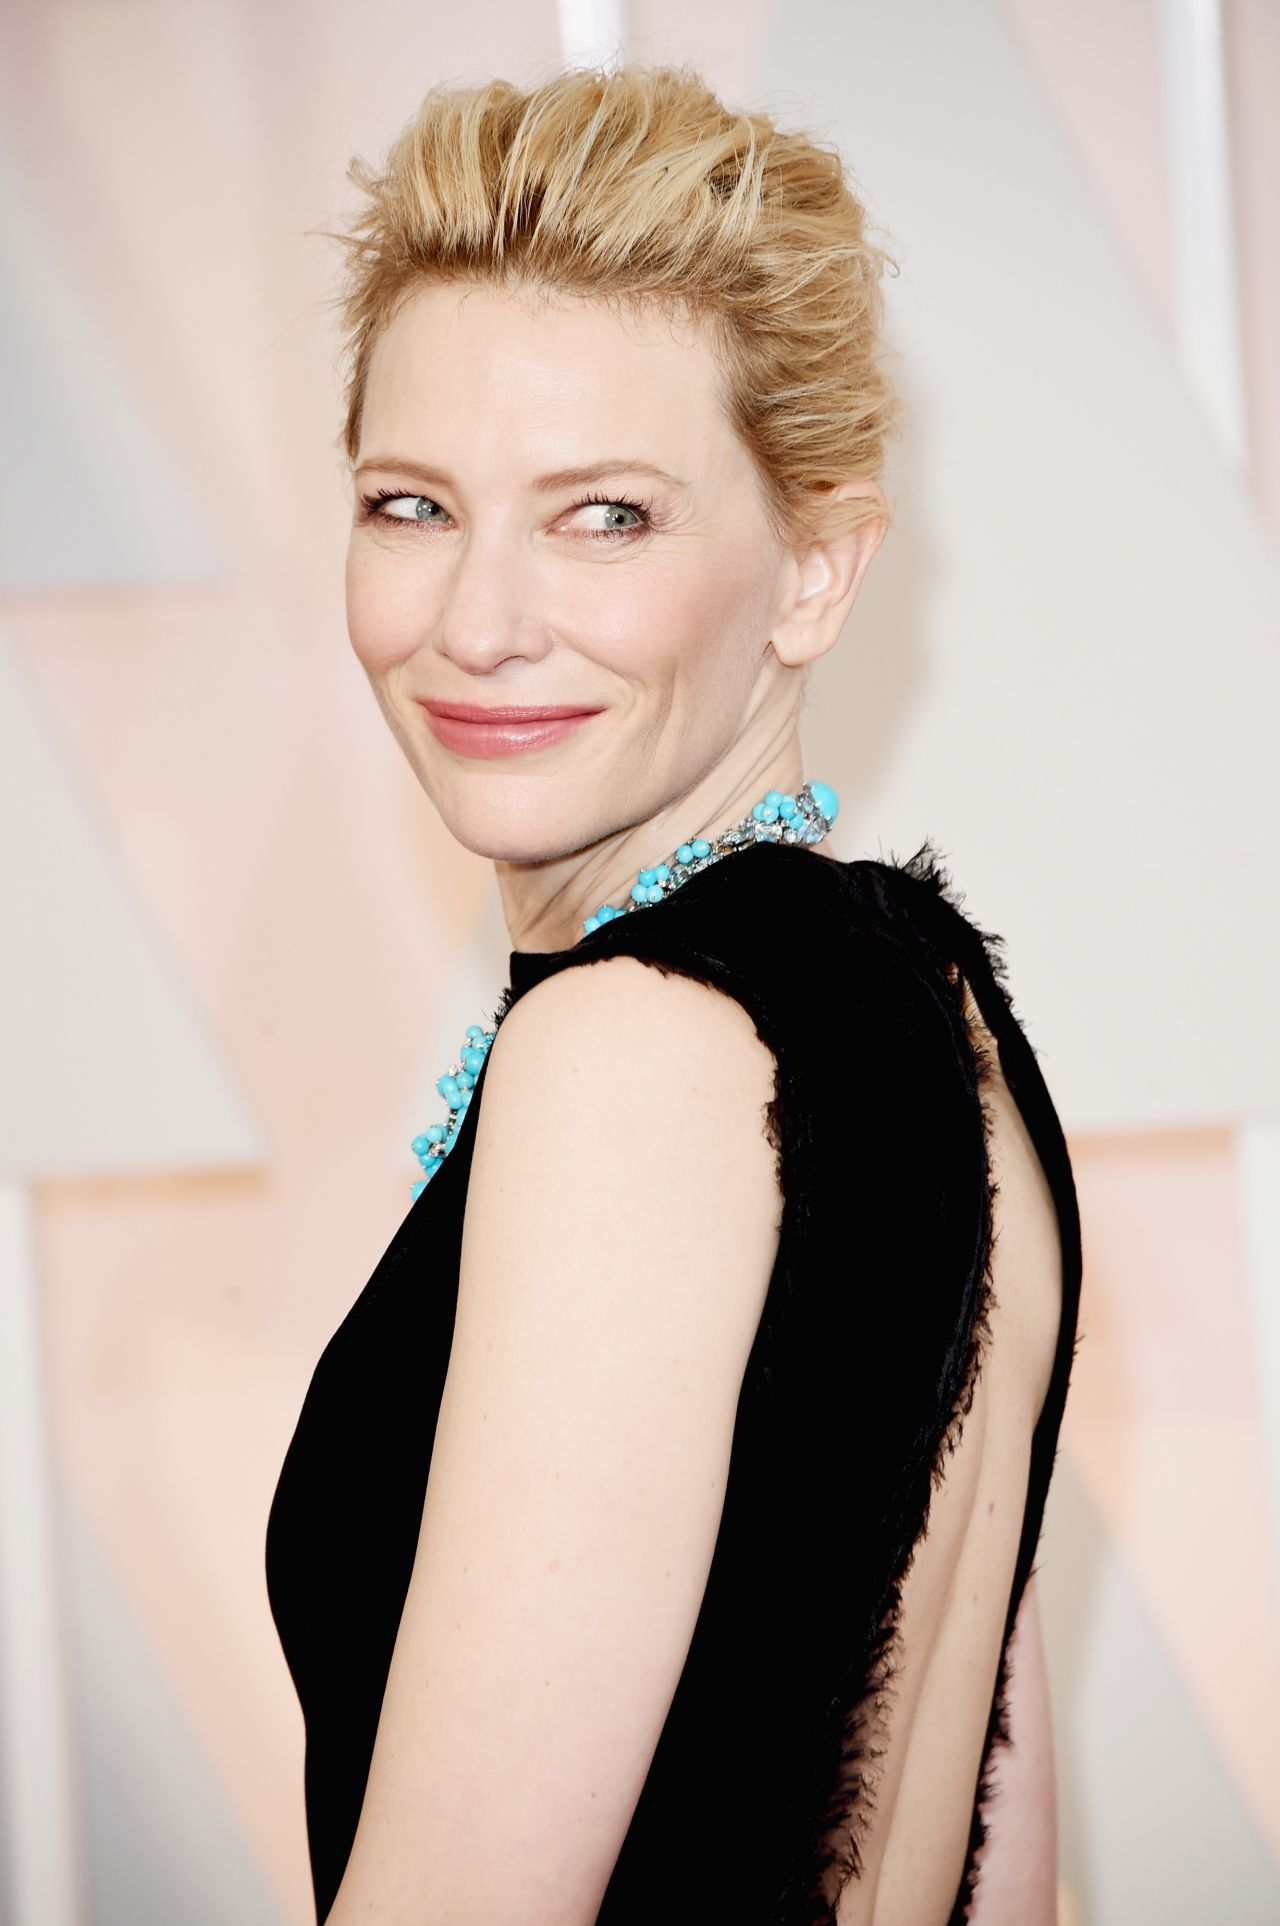 cate blanchett - photo #11